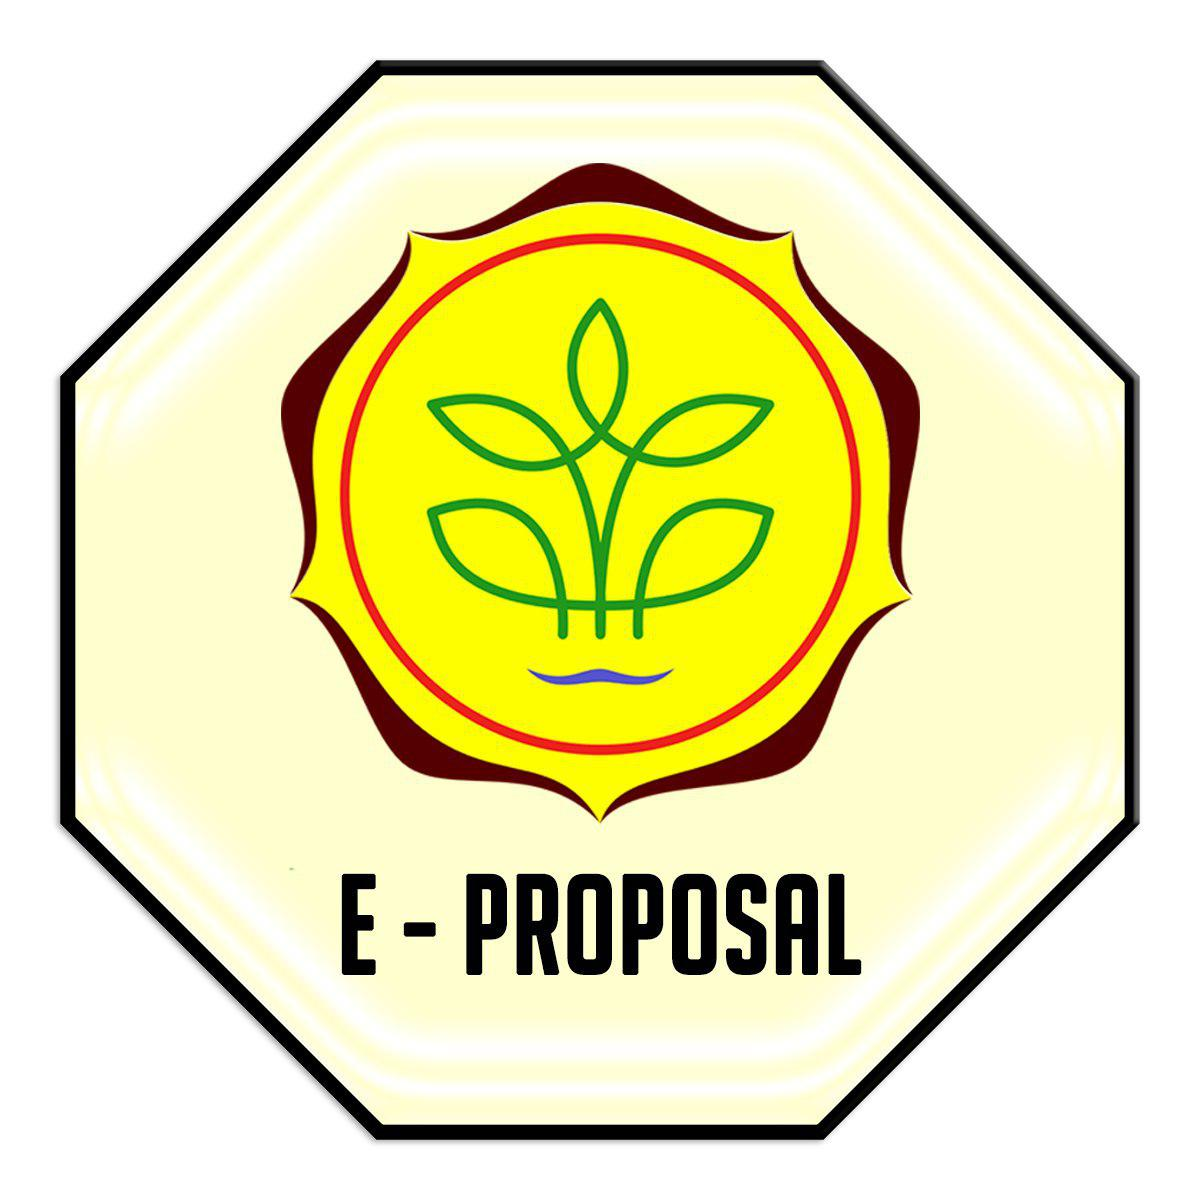 E-Proposal Kementrian Pertanian